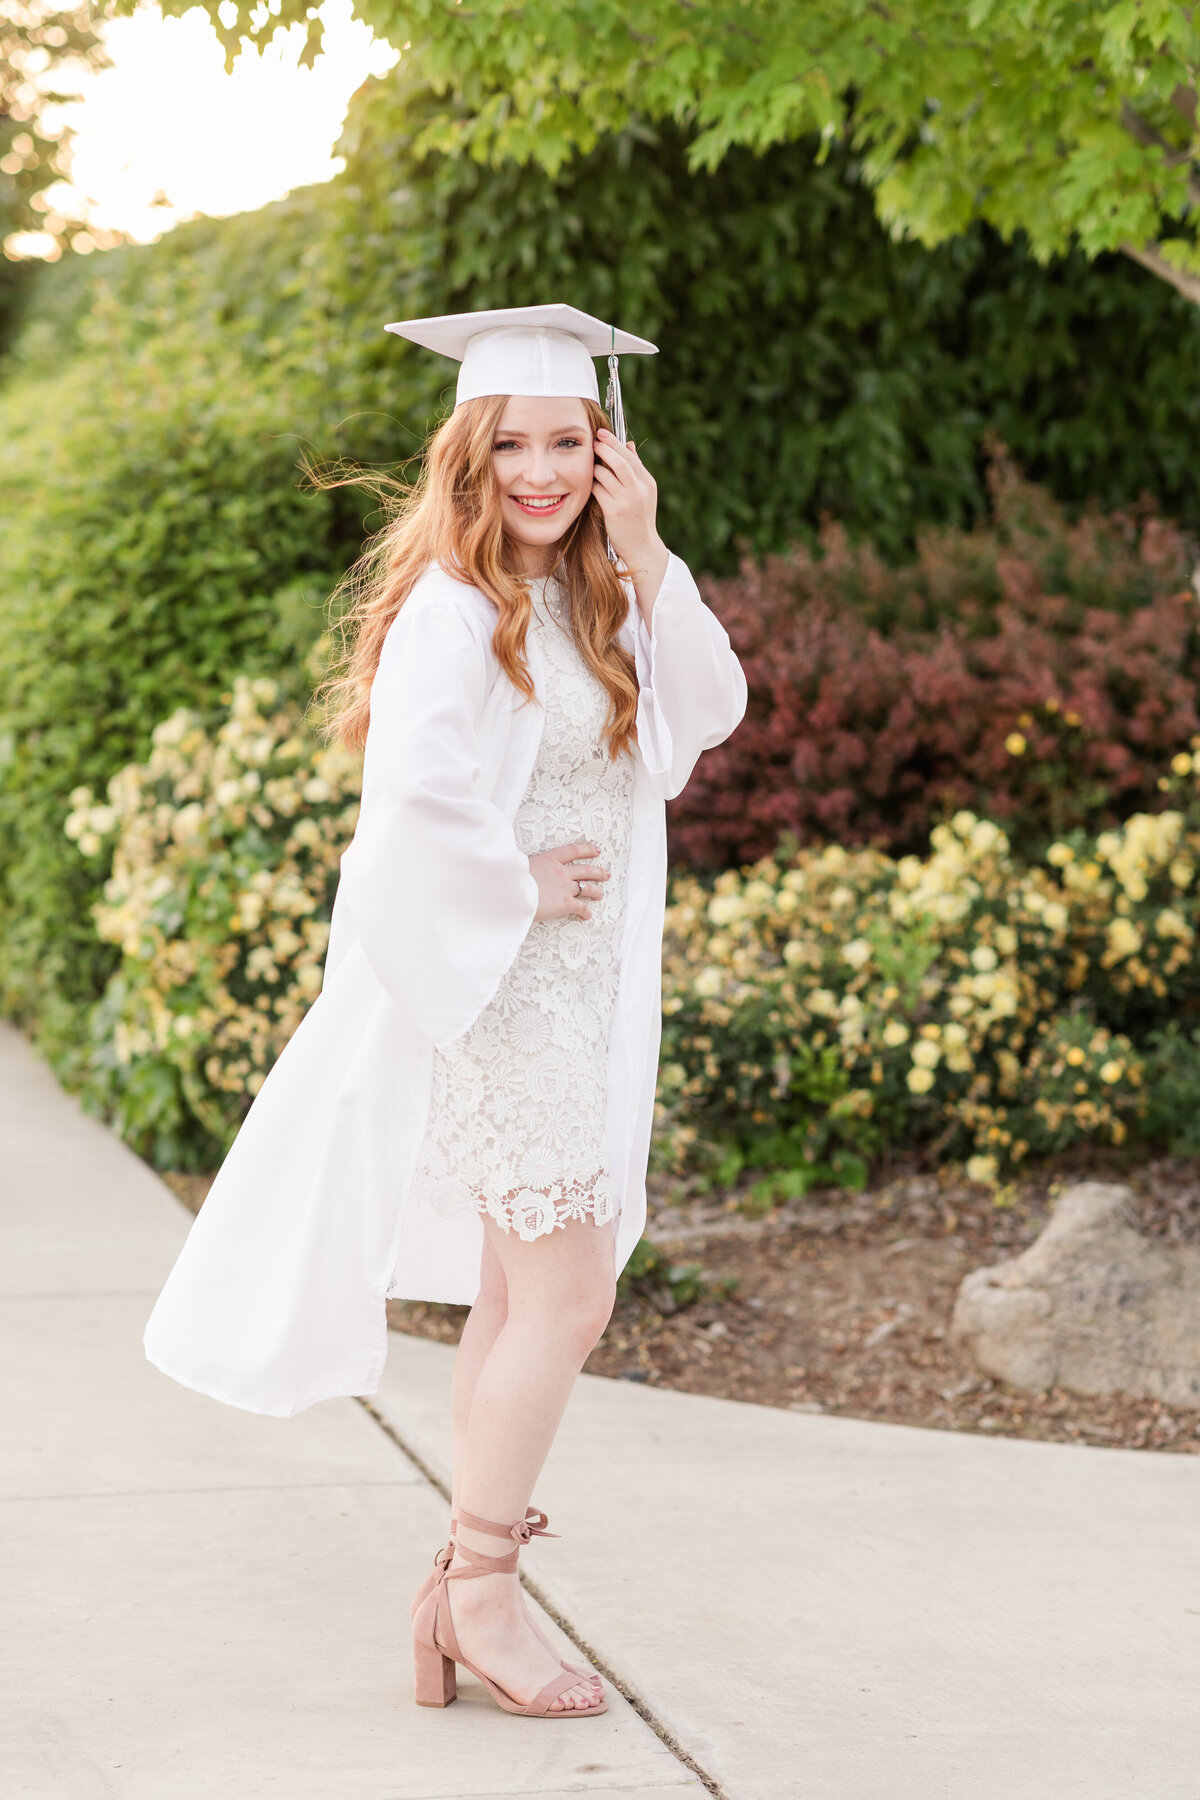 Mikayla Cap & Gown 2020 _14